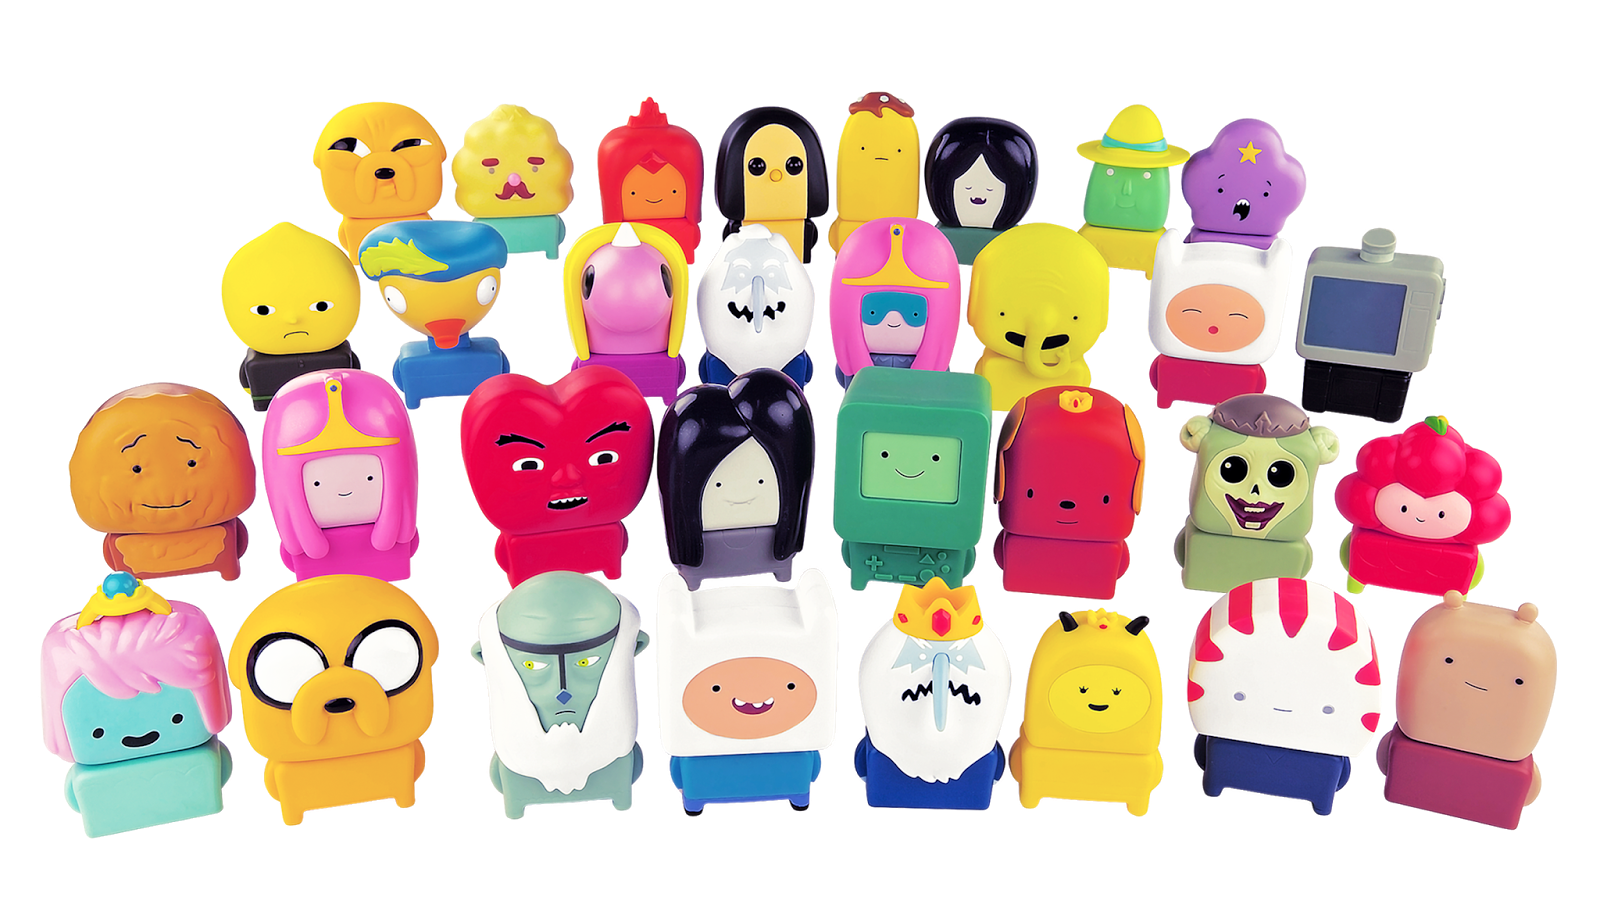 Cartoon Network Toys : Yolantele adventure time toys are out mcdonalds